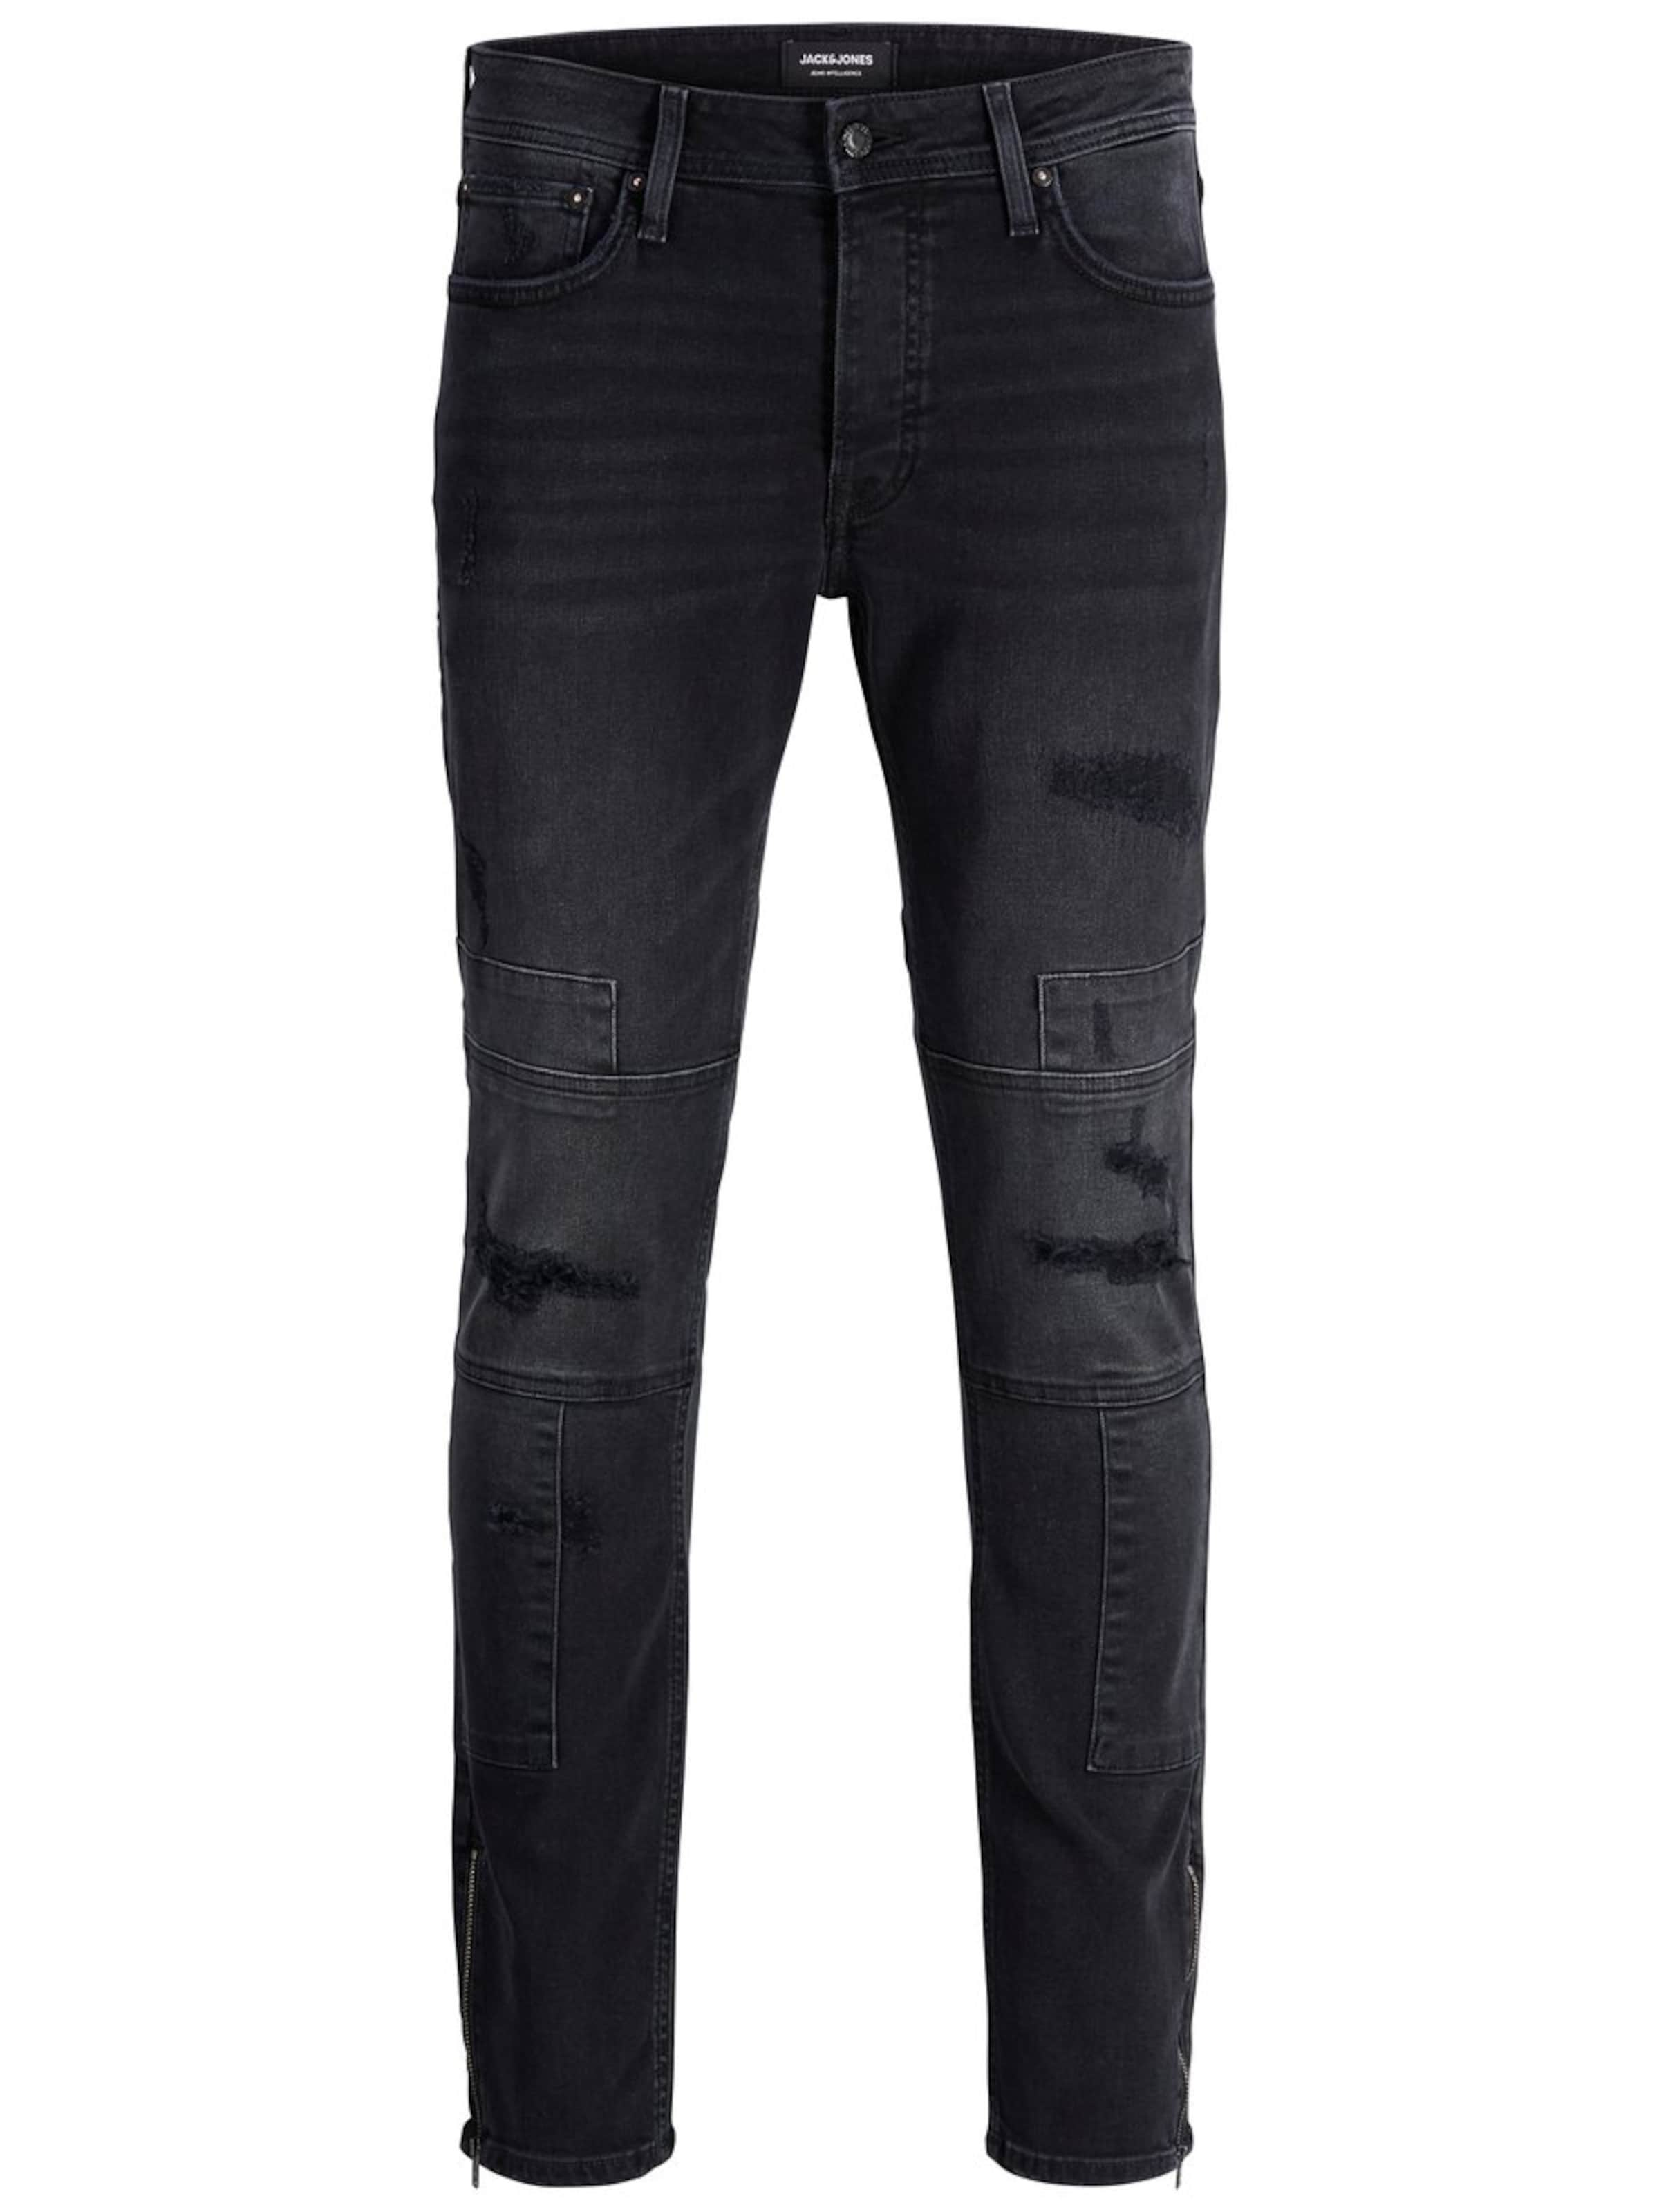 Original 002' Jean Jackamp; 'glenn Cj Jones Denim En Noir hdsQrt